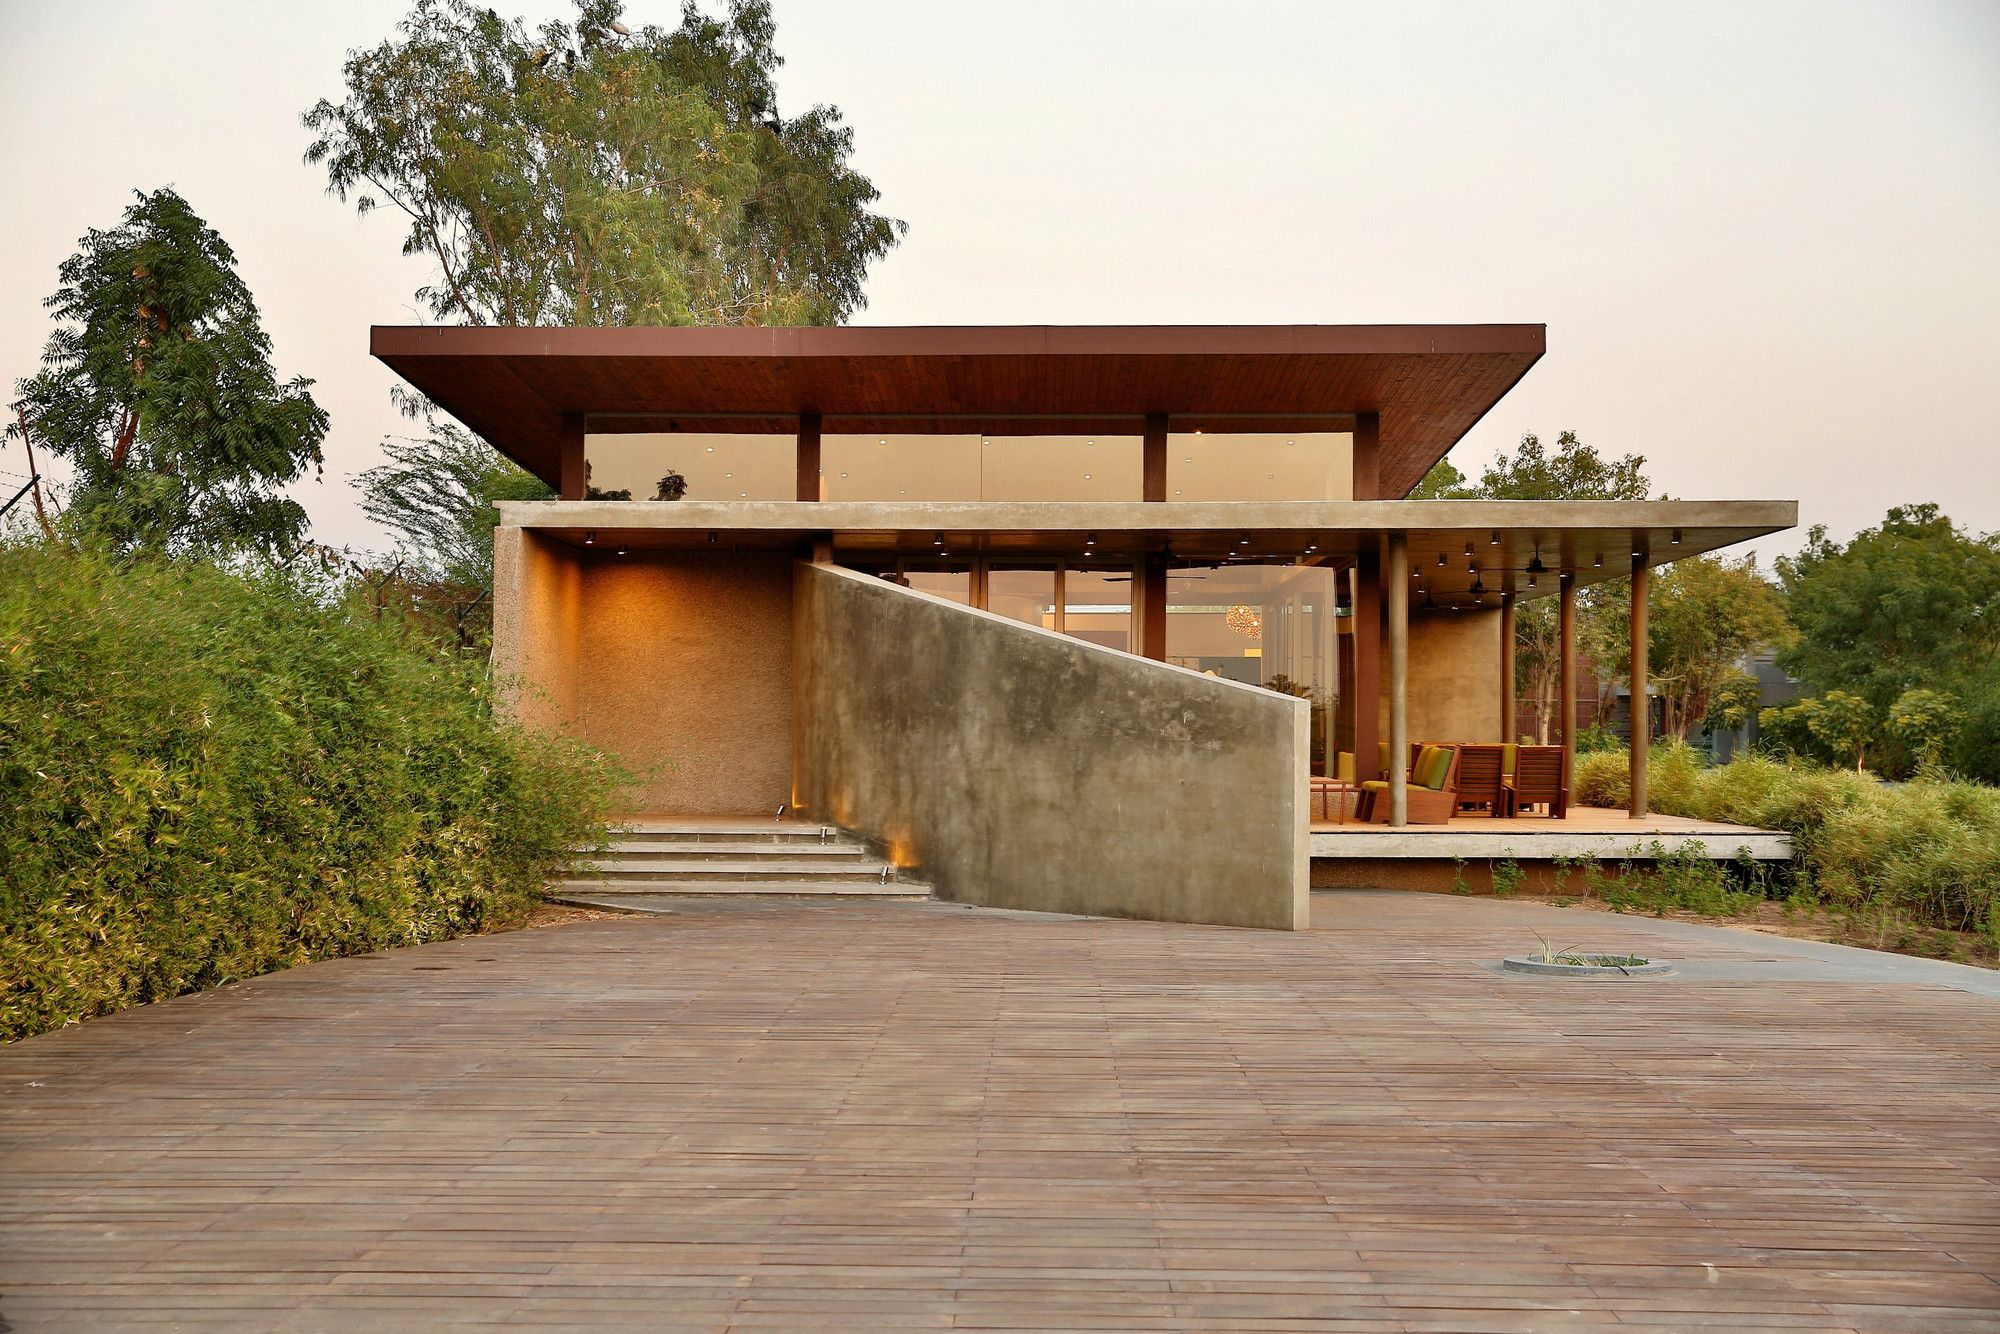 Image 1 of 16 from gallery of Visitors Entrance Pavilion at Glade One / Khosla Associates. Photograph by Jignesh Vishwanath